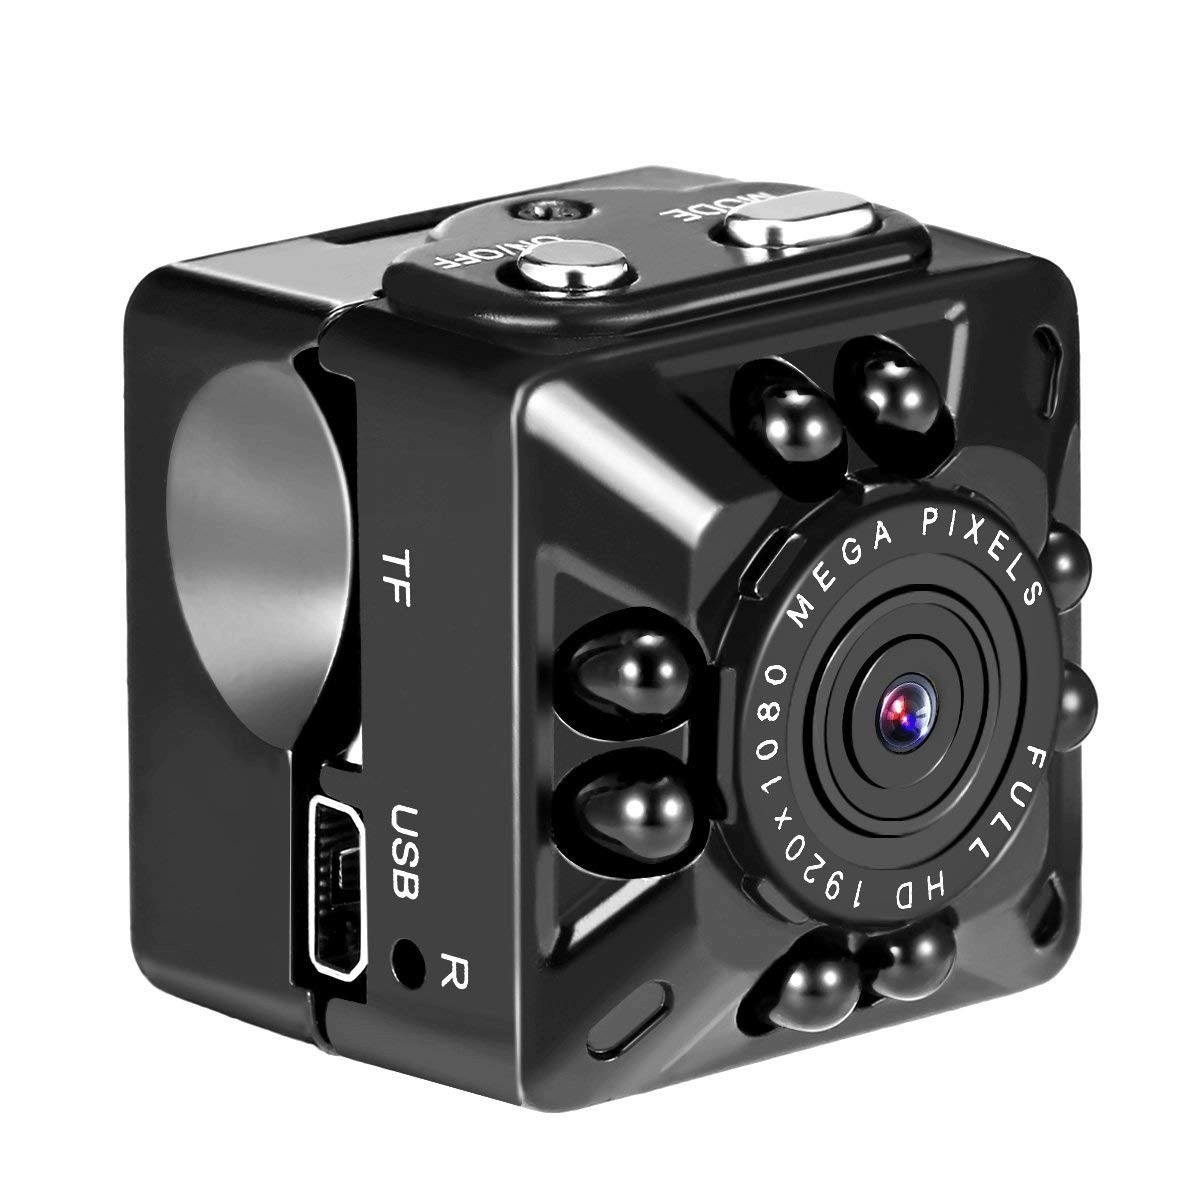 Security Camera Full HD 1080P Motion Detection Night Vision Recorder  black